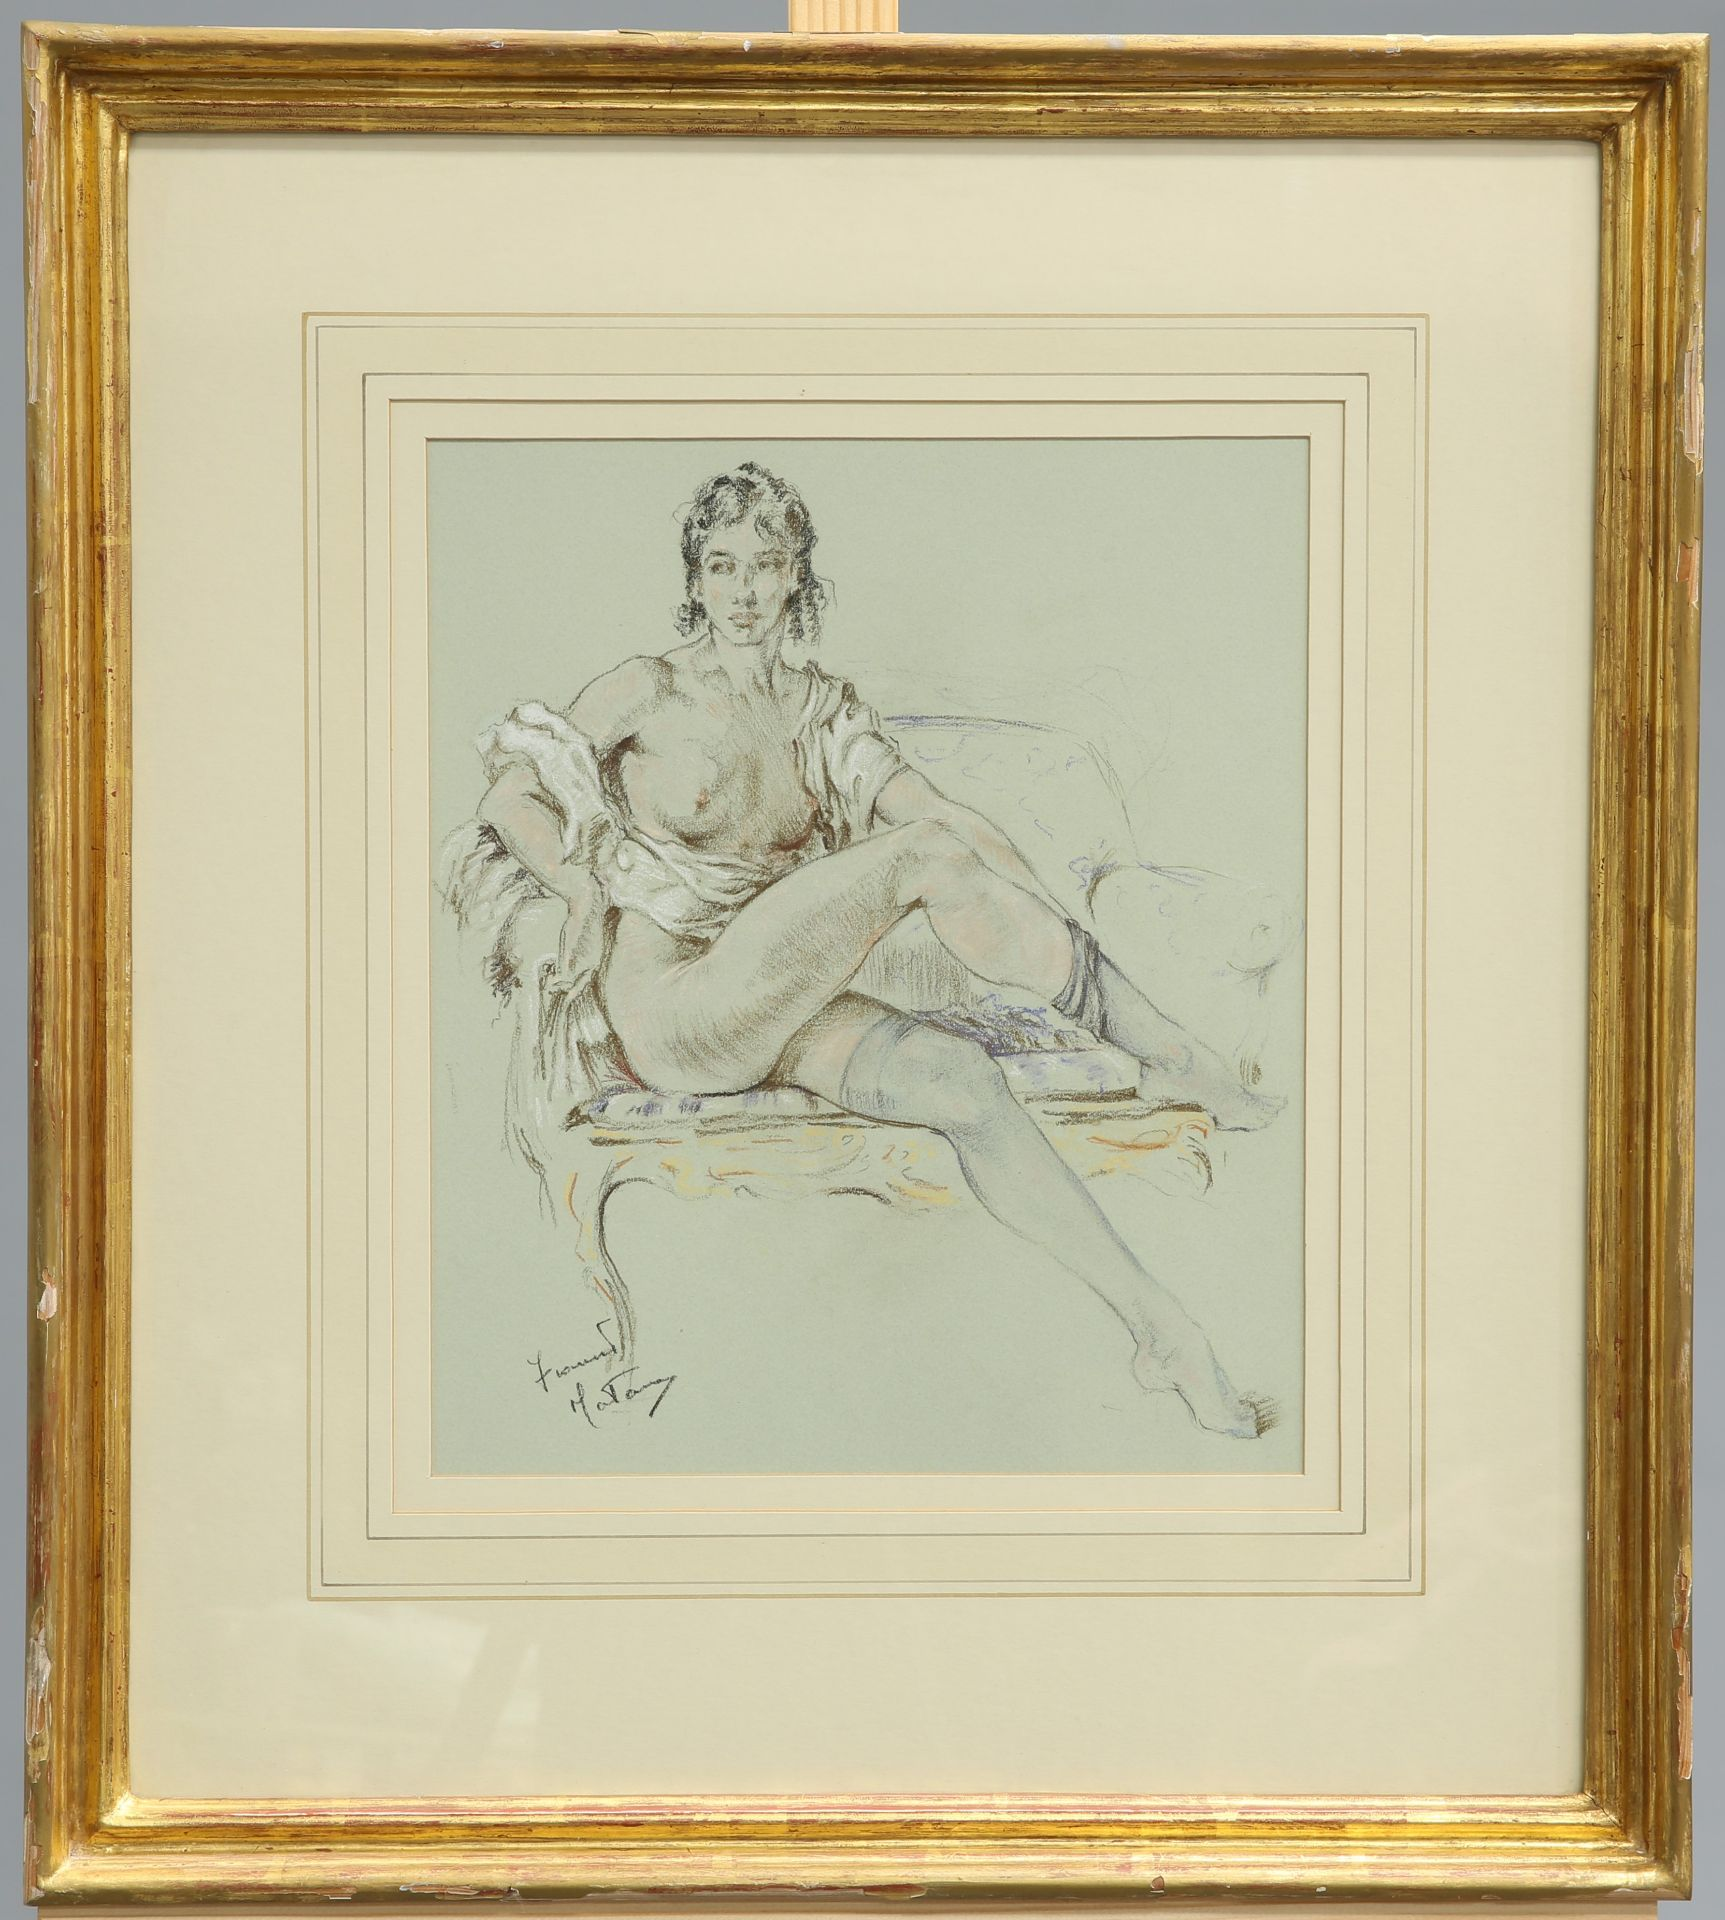 FRANCO MATANIA (1922-2006), FEMALE NUDE SEATED ON A SETTEE, signed lower left, pastel, framed.